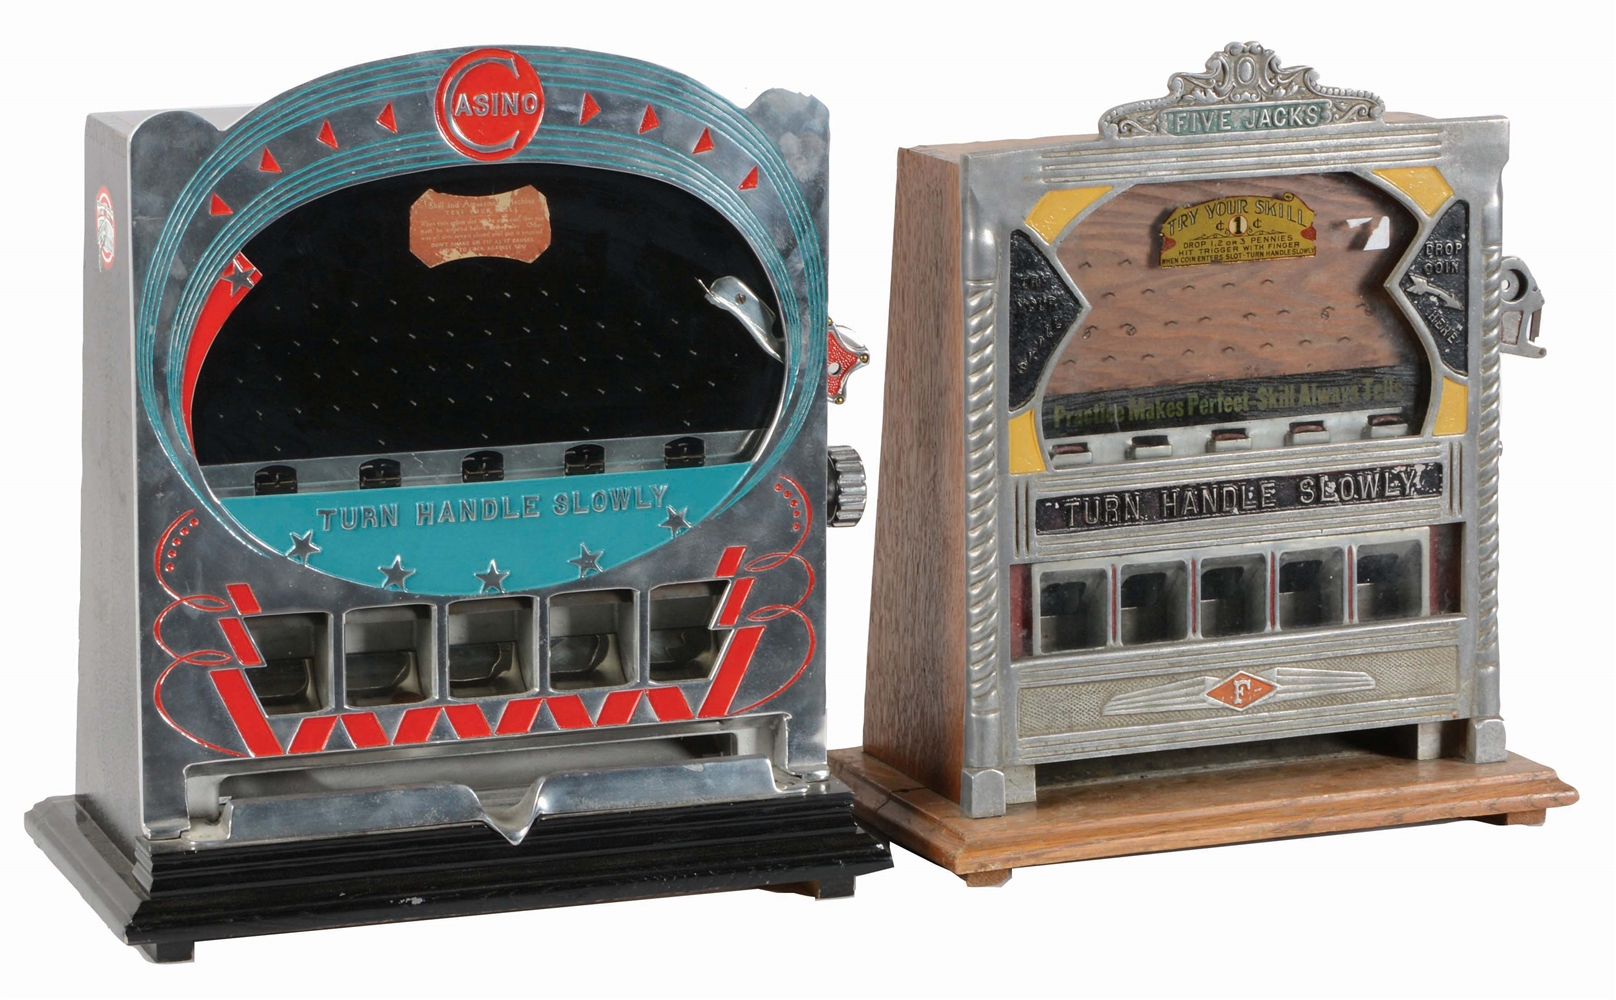 LOT OF 2: 1¢ A.B.T. CASINO COUNTER POCKET TRADE STIMULATOR AND 1¢ FIELD MFG. FIVE JACKS COUNTER POCKET TRADE STIMULATOR.